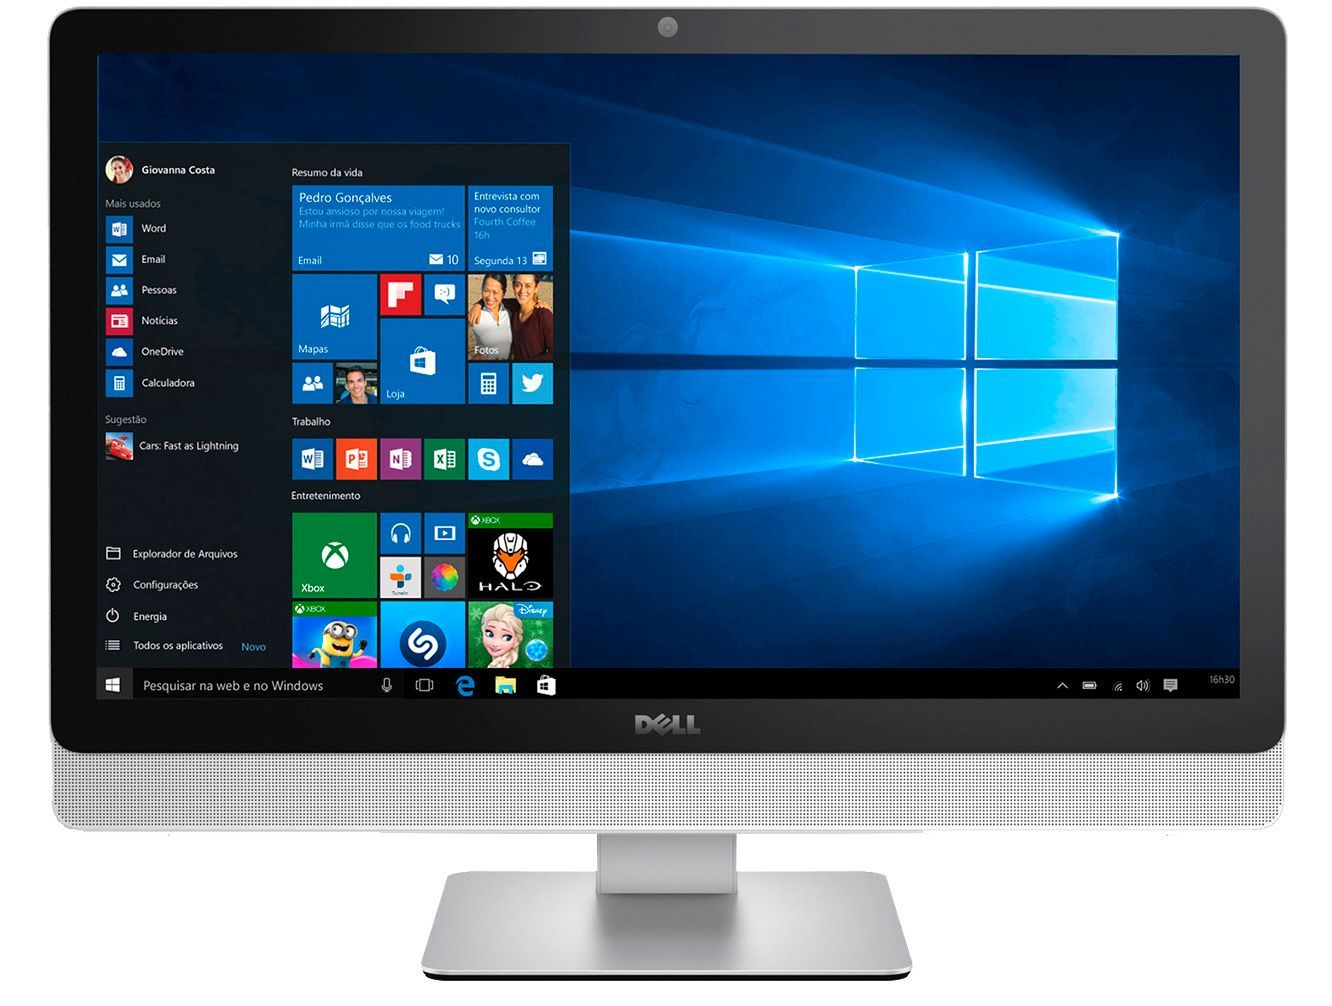 All In One Dell 3464 I7-7500U/8Gb| 1Tb| Dvd|Gf920Mx(2Gb)| Wifi|Tela 24 Touch| Win 10 Pro